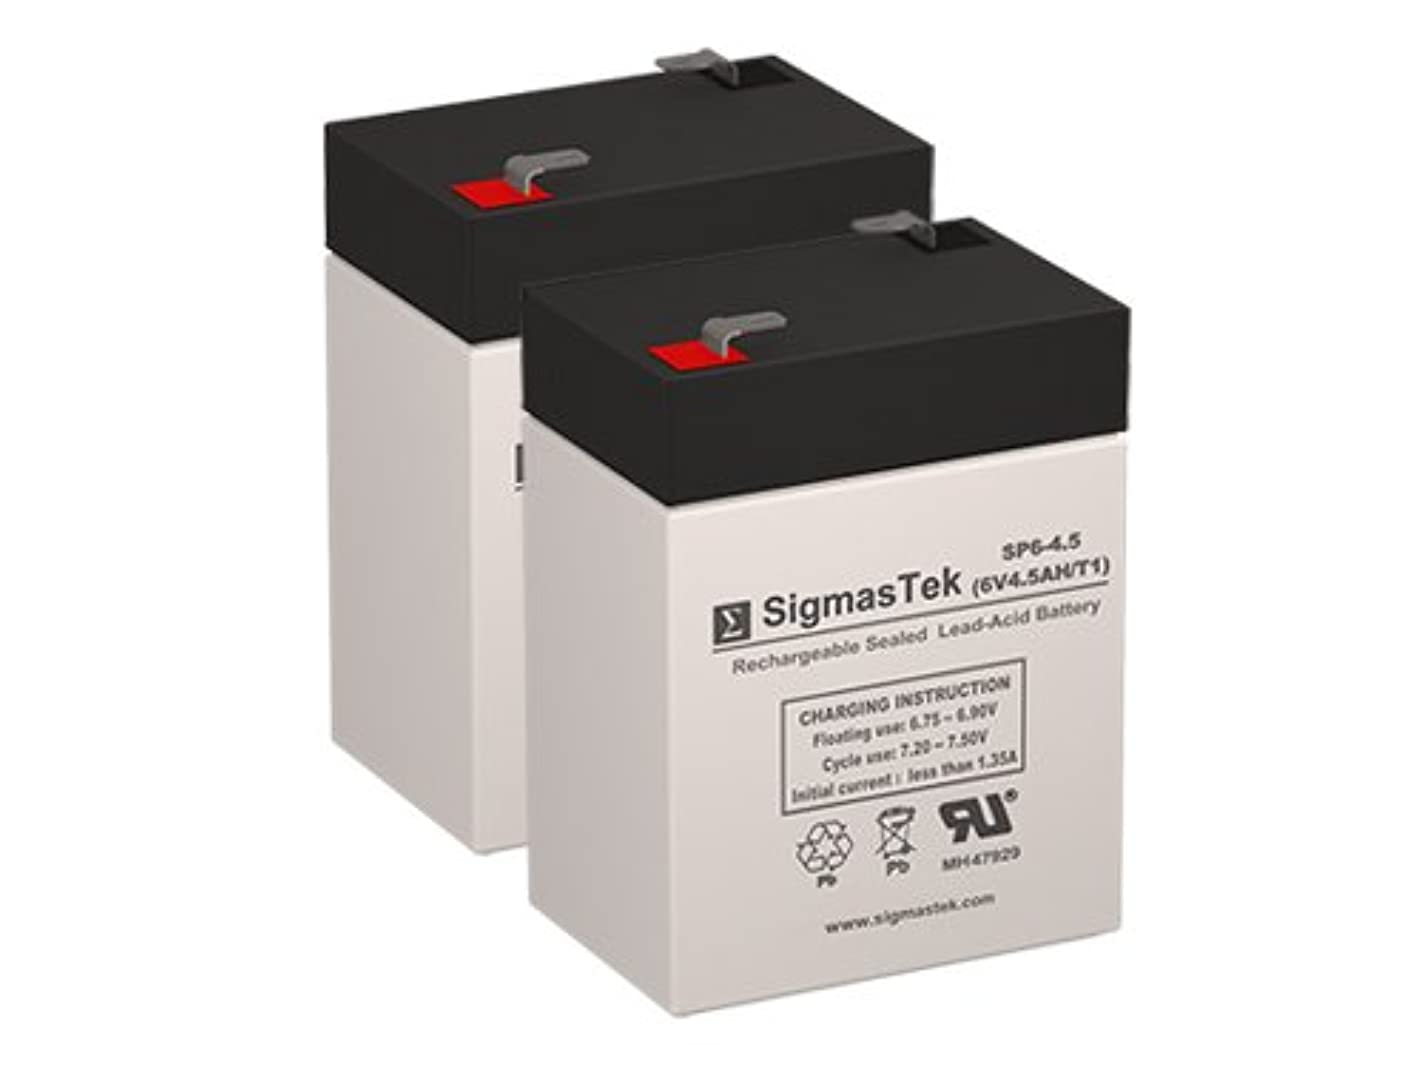 3FM4.5 6 Volt 4.5 AmpH SLA Replacement Battery with F1 Terminal